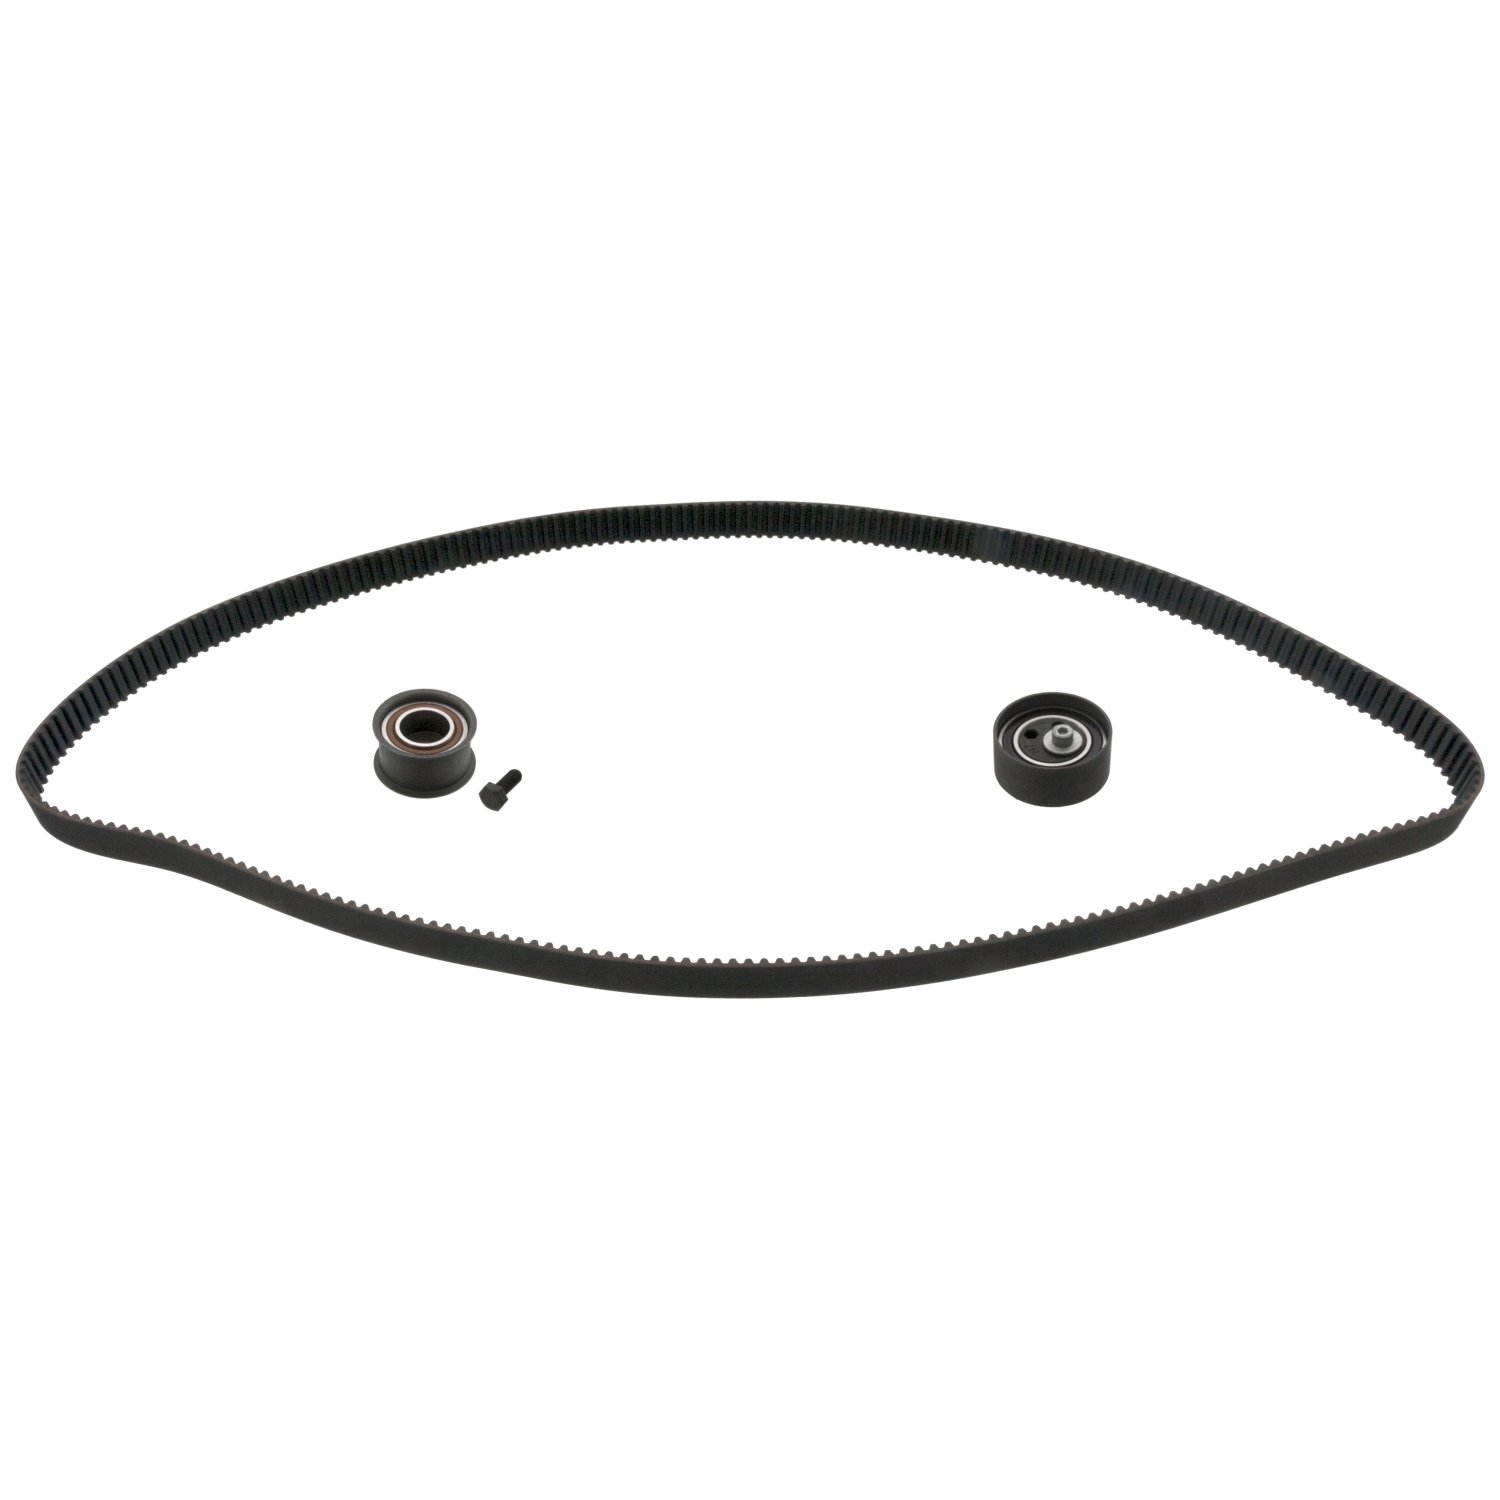 febi bilstein 23292 timing belt kit for camshaft - Pack of 1